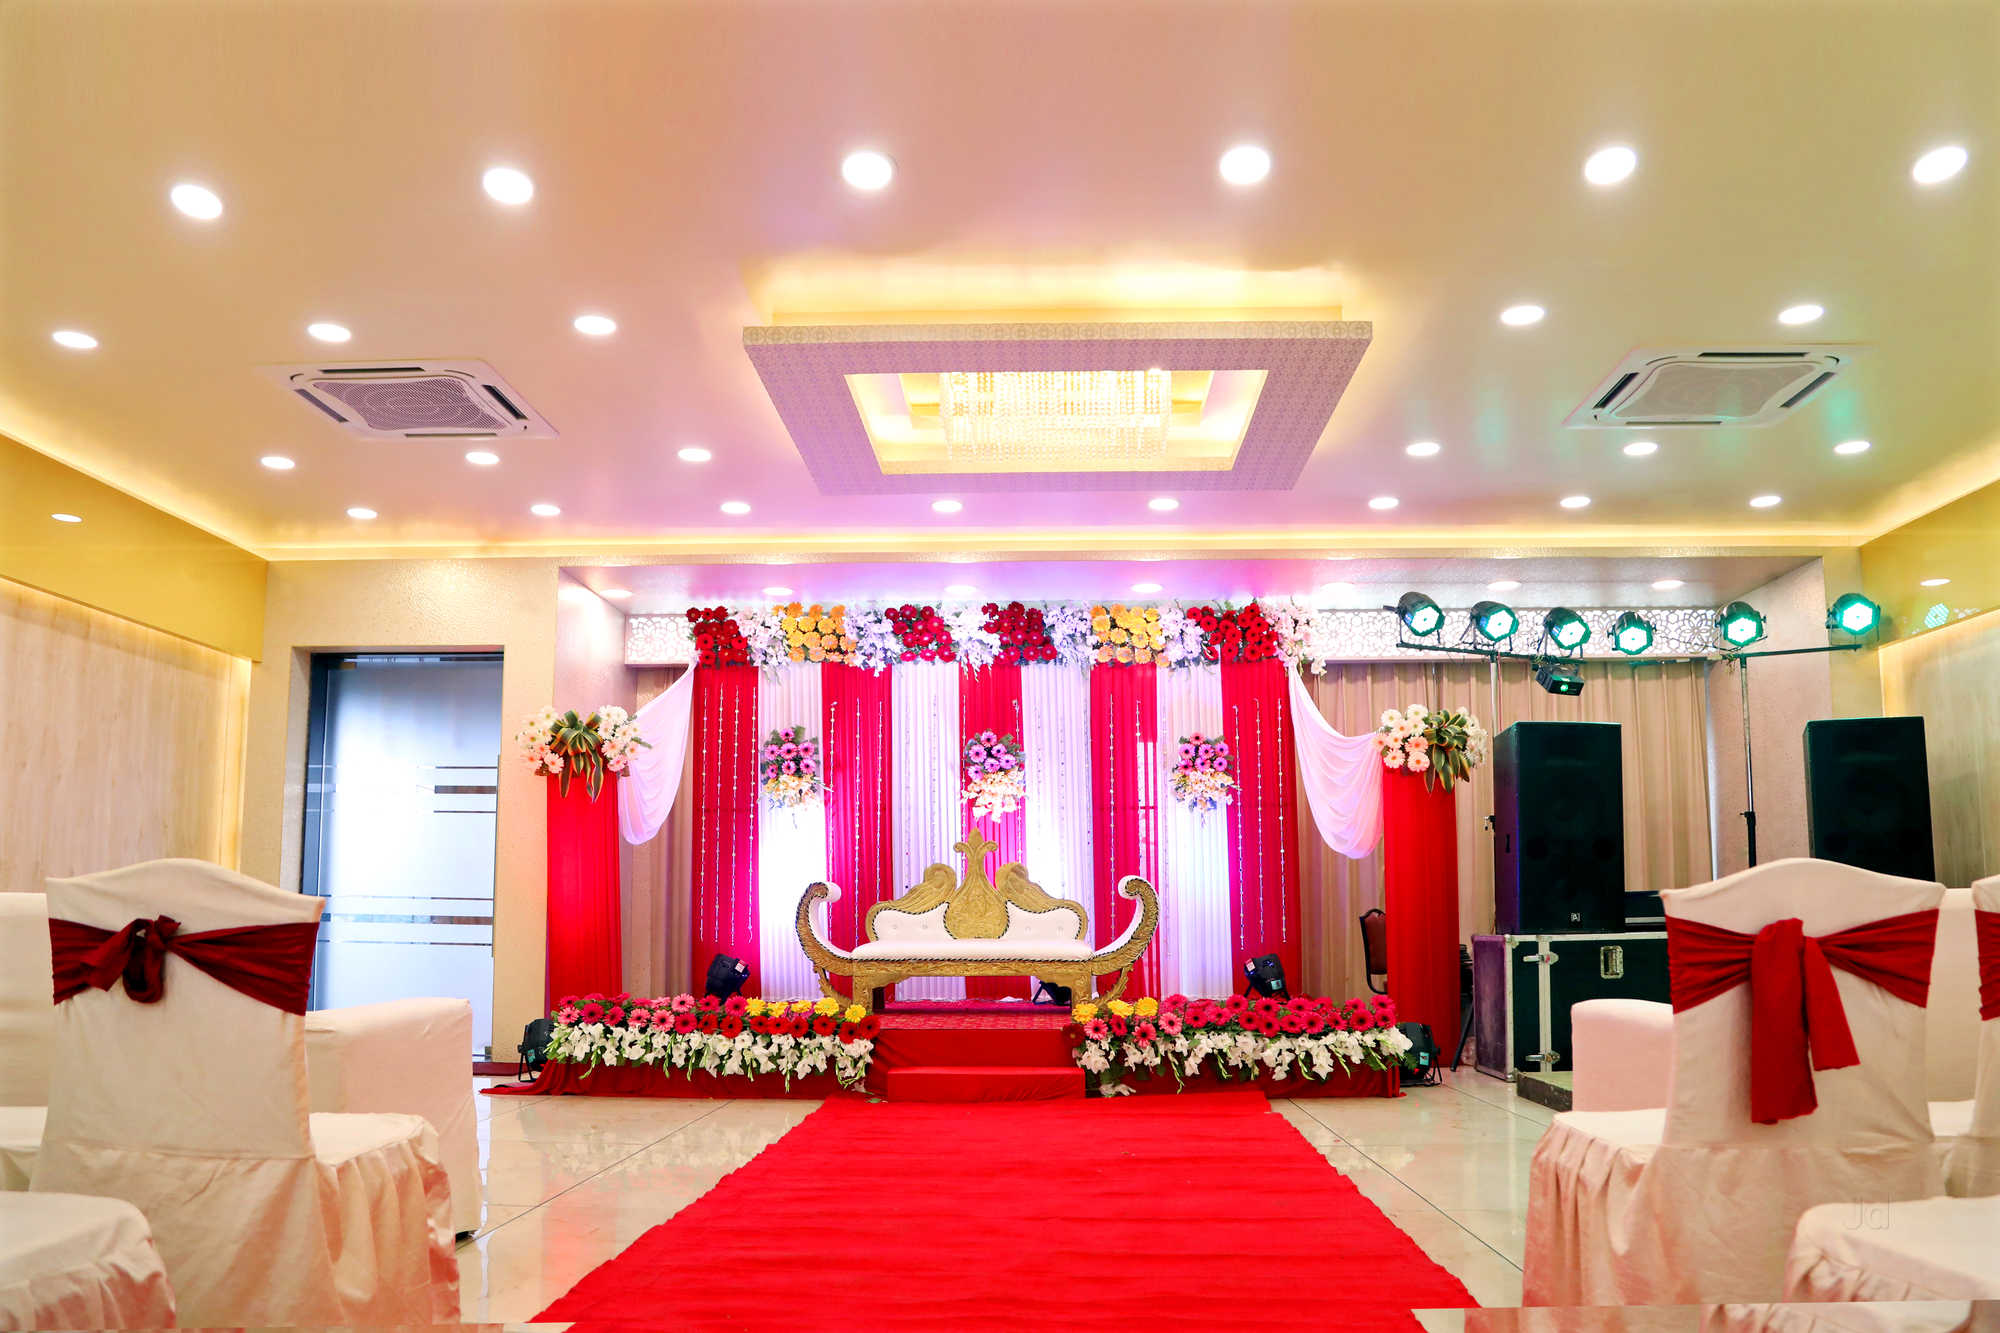 Top Ac Banquet Halls in Pgi Road-Sgpgi Campus - Best Ac Marriage ...